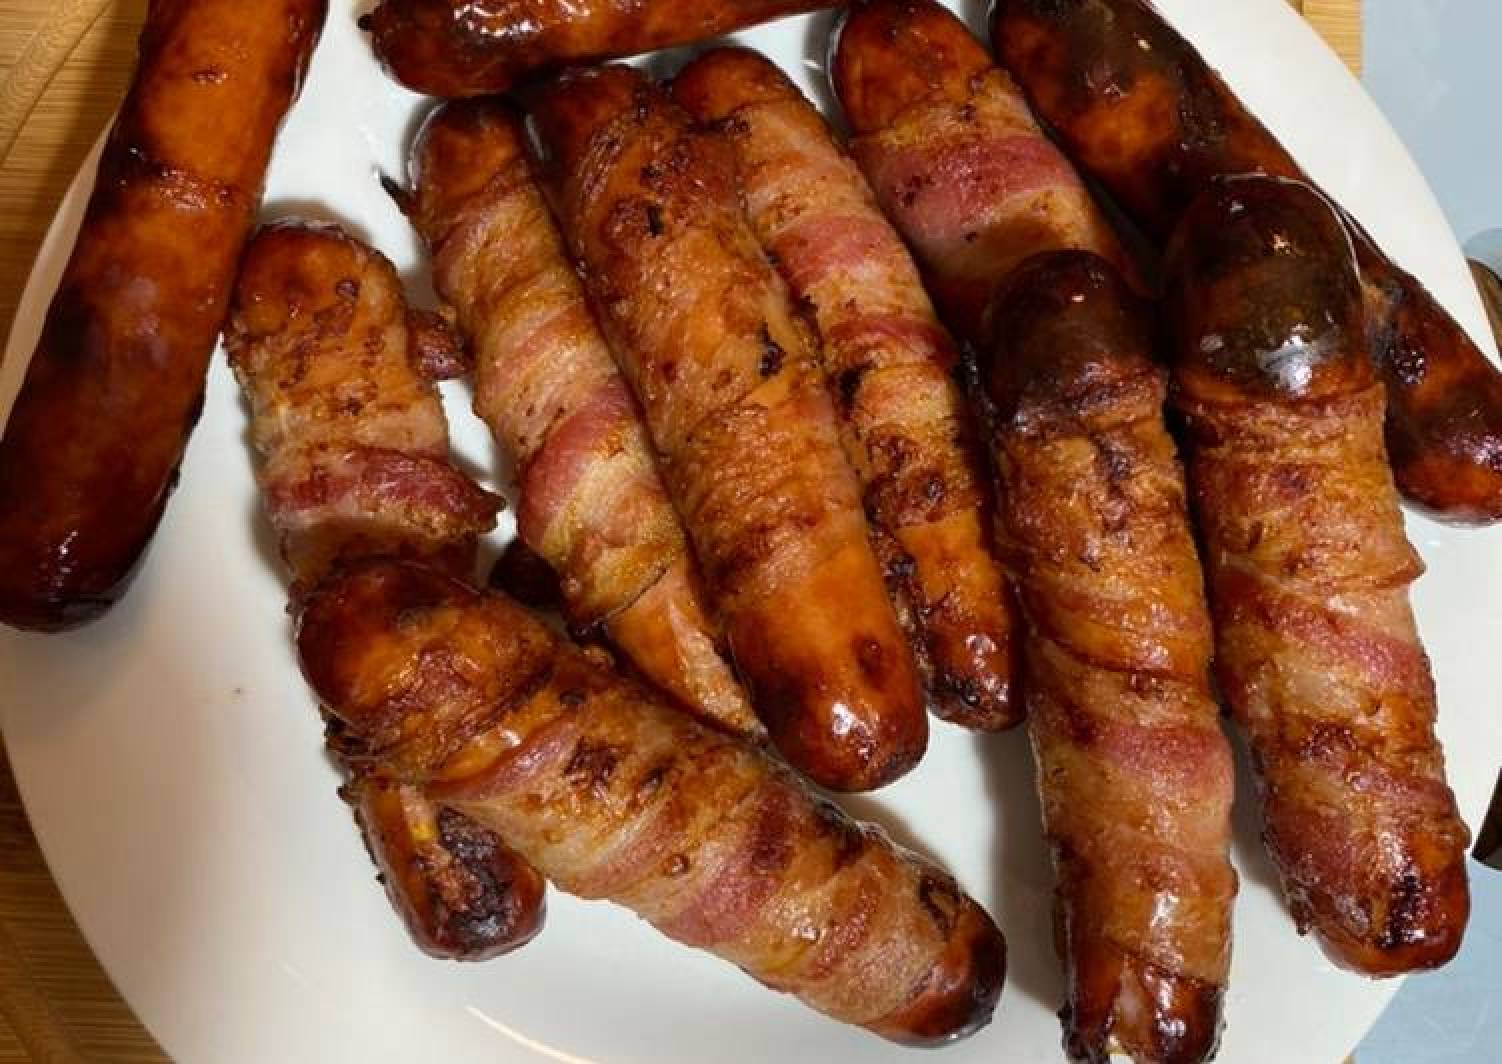 Bacon wrapped cheddar Brats